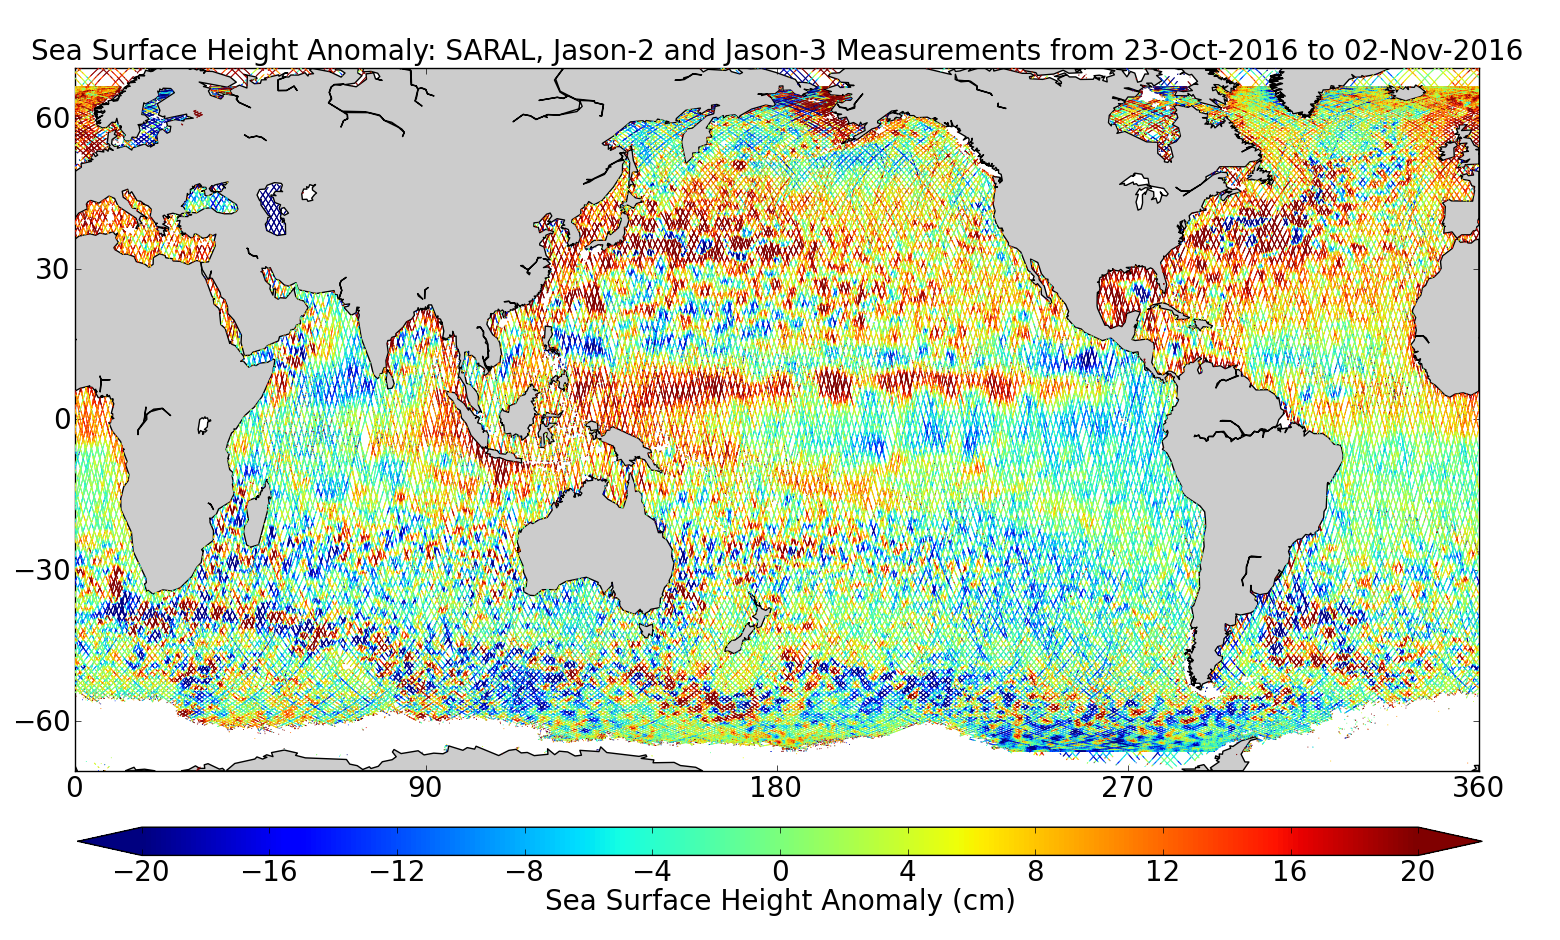 Sea Surface Height Anomaly: SARAL, Jason-2 and Jason-3 Measurements from 23-Oct-2016 to 02-Nov-2016